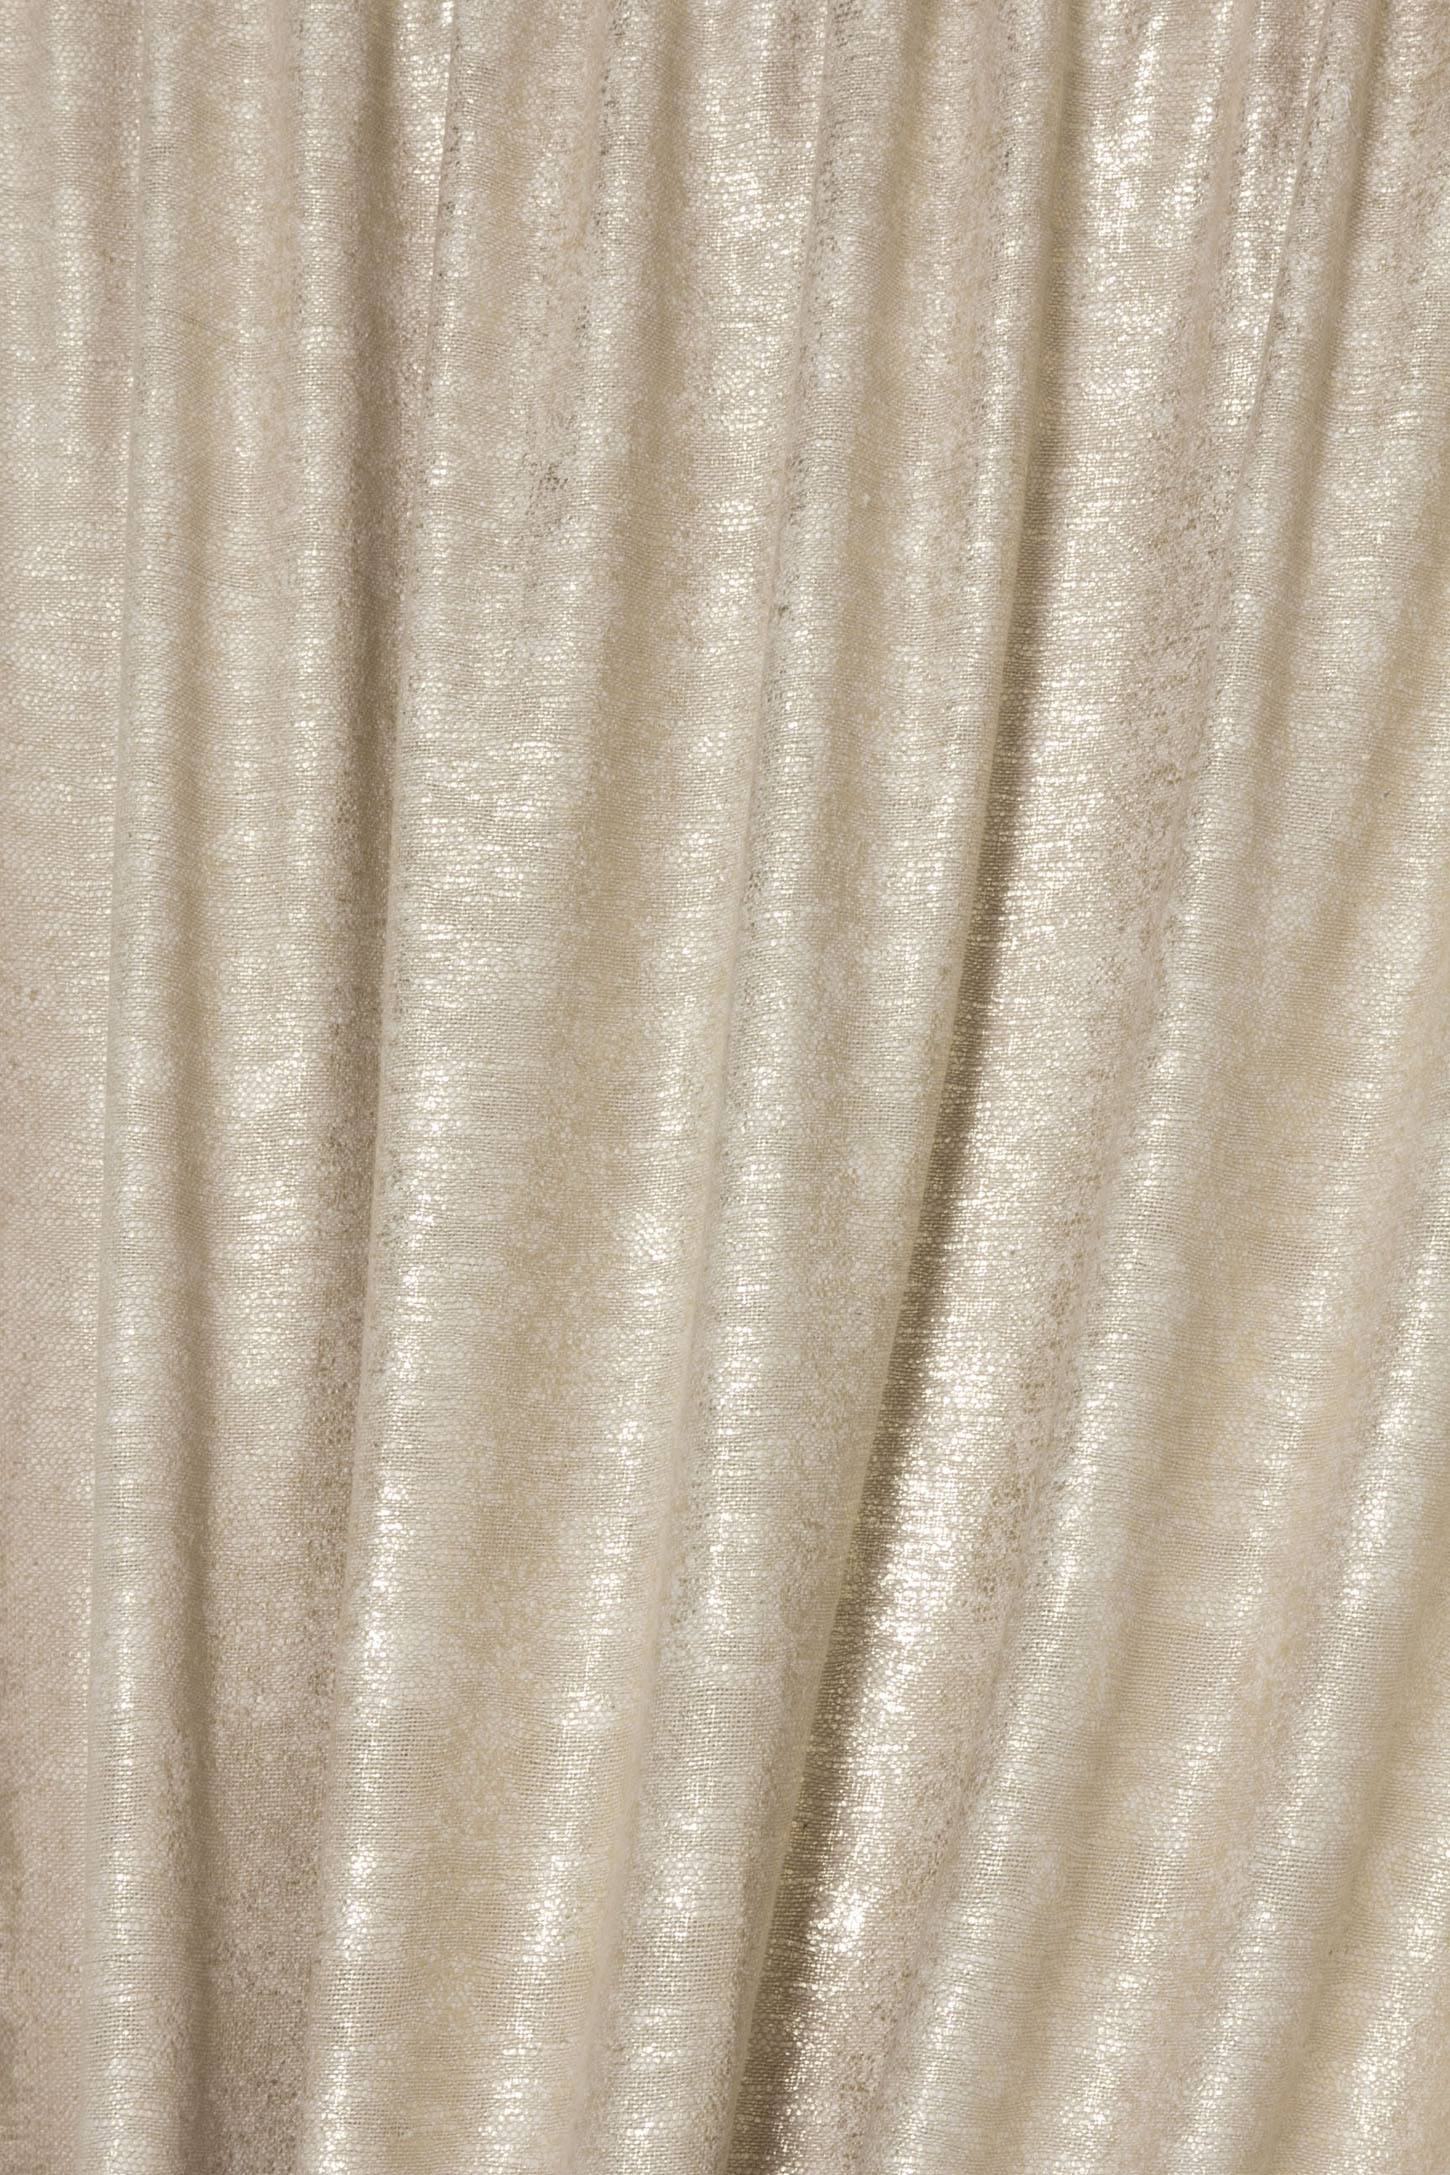 Slide View: 6: Gilded Waves Curtain